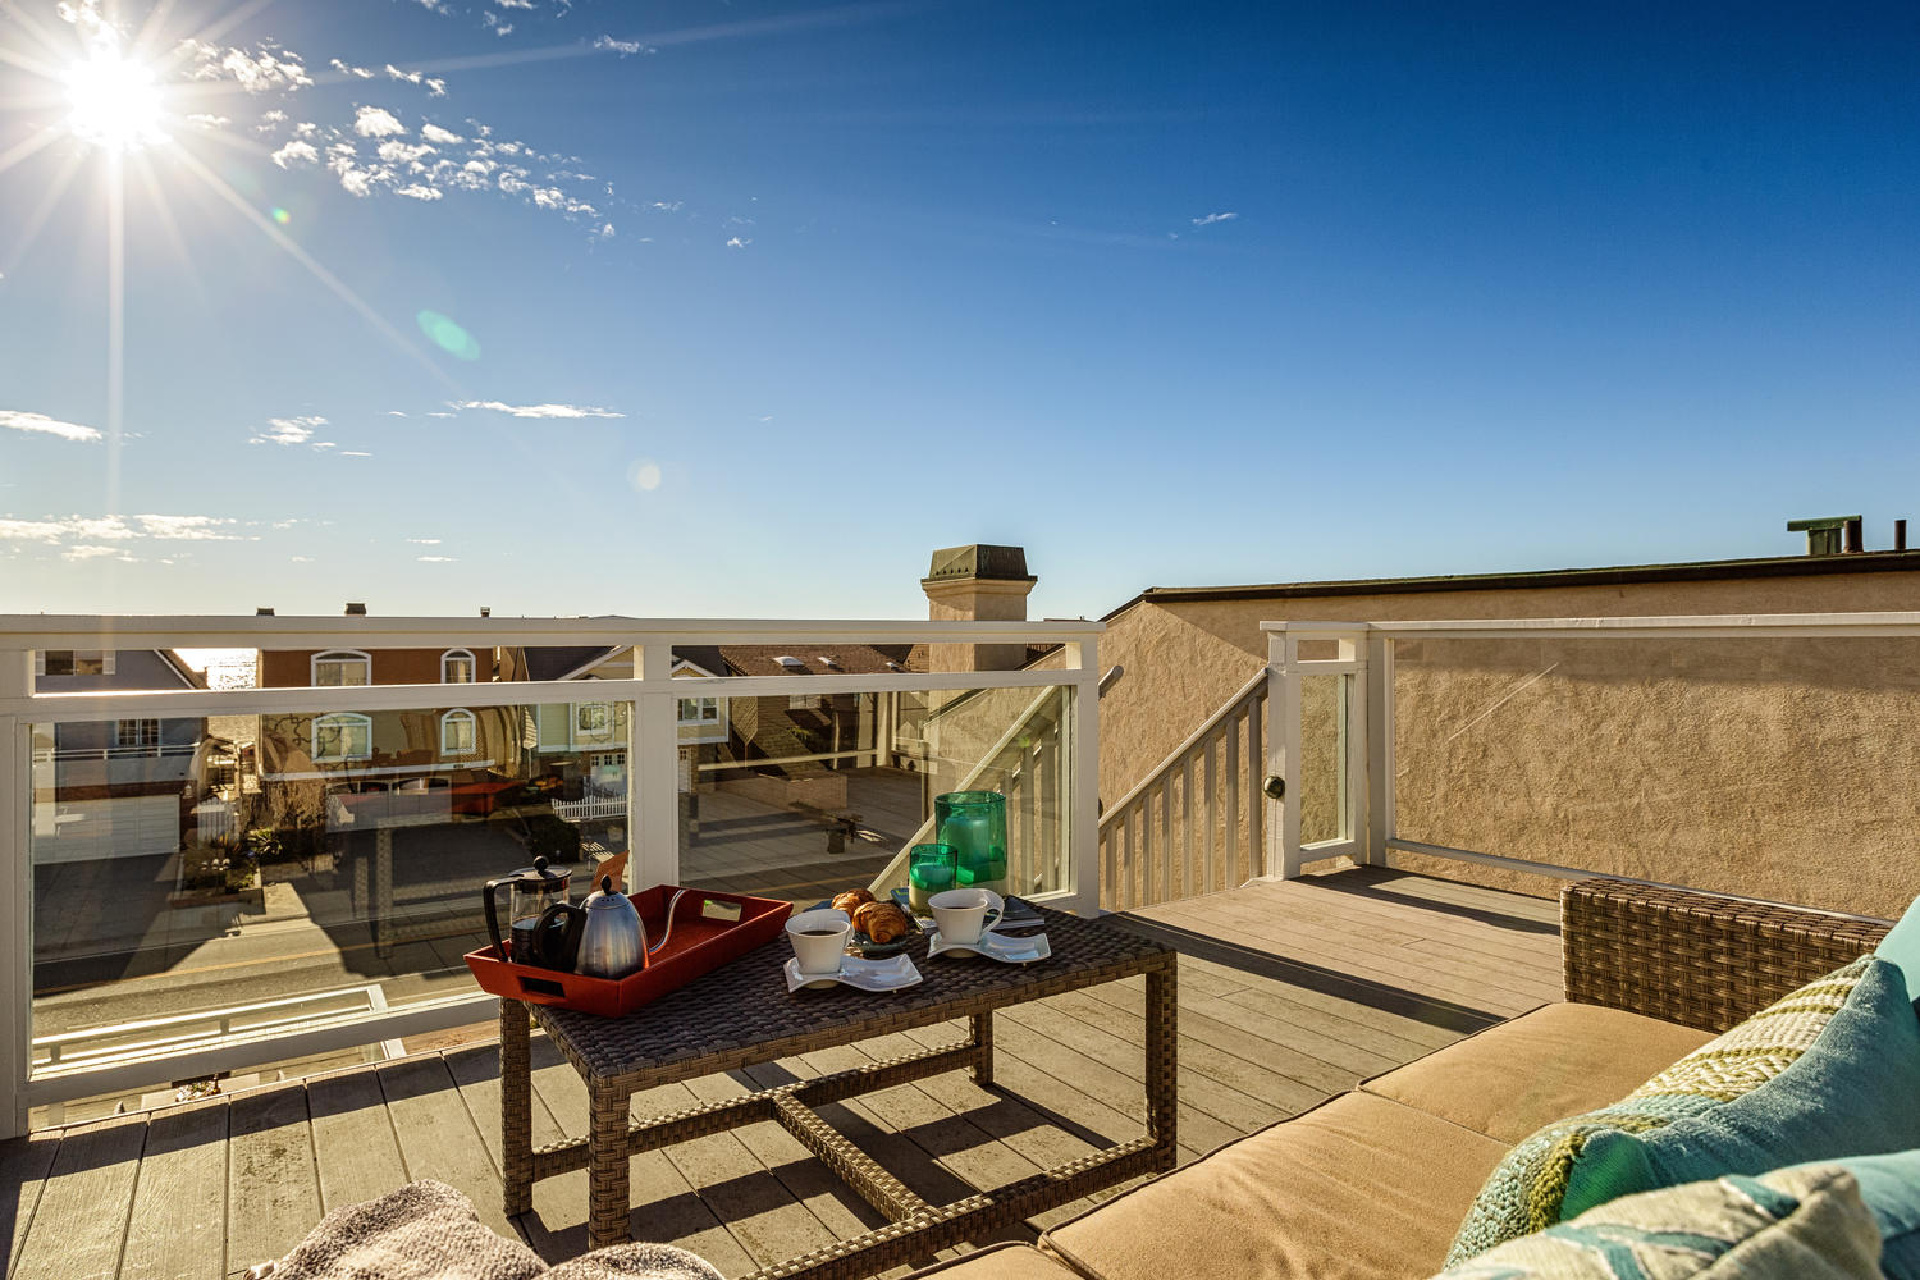 https://addressrealestate.com/media/images/blogs/38/2/b_23-1408-ocean-dr-oxnard-ca-93035-mls-size-023-17-rooftop-patio-1500x1000-72dpi.jpg